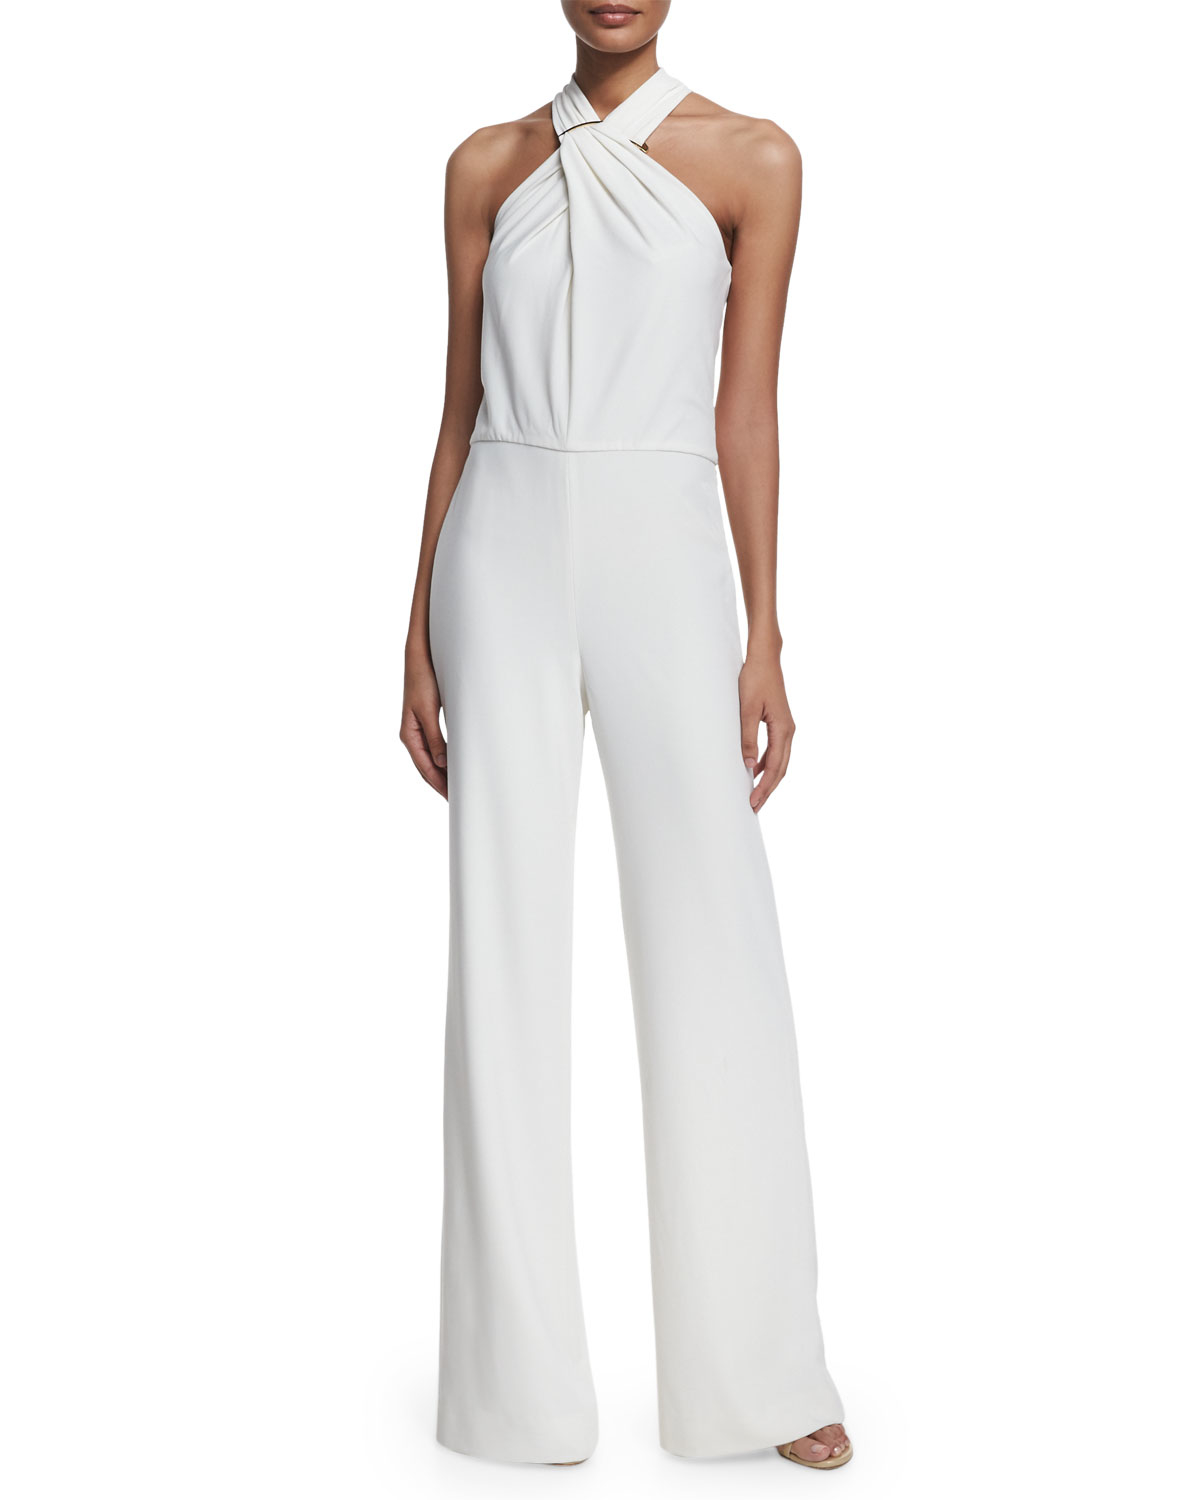 halston heritage bone crisscross halter wide leg jumpsuit white product 1 379172951 normal